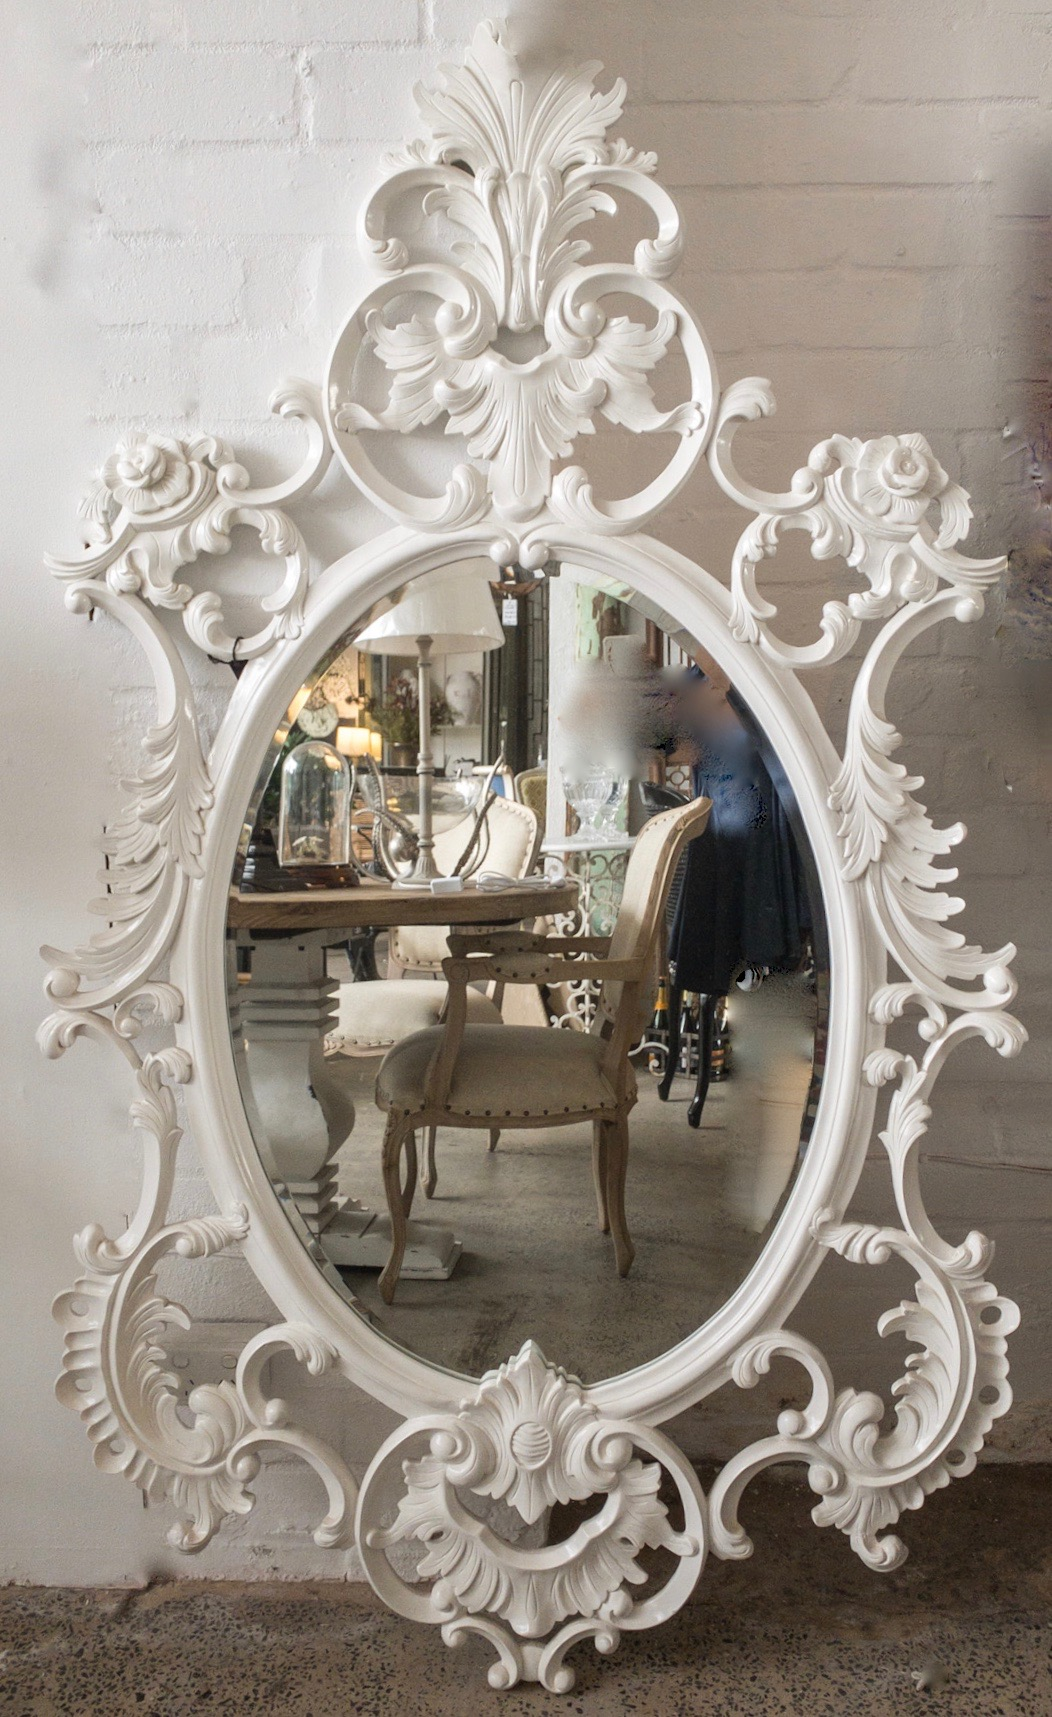 Dorothy-Draper-Timber-Mirror-Gerard-Lane-Furniture-LeForge-Willoughby-Sydney